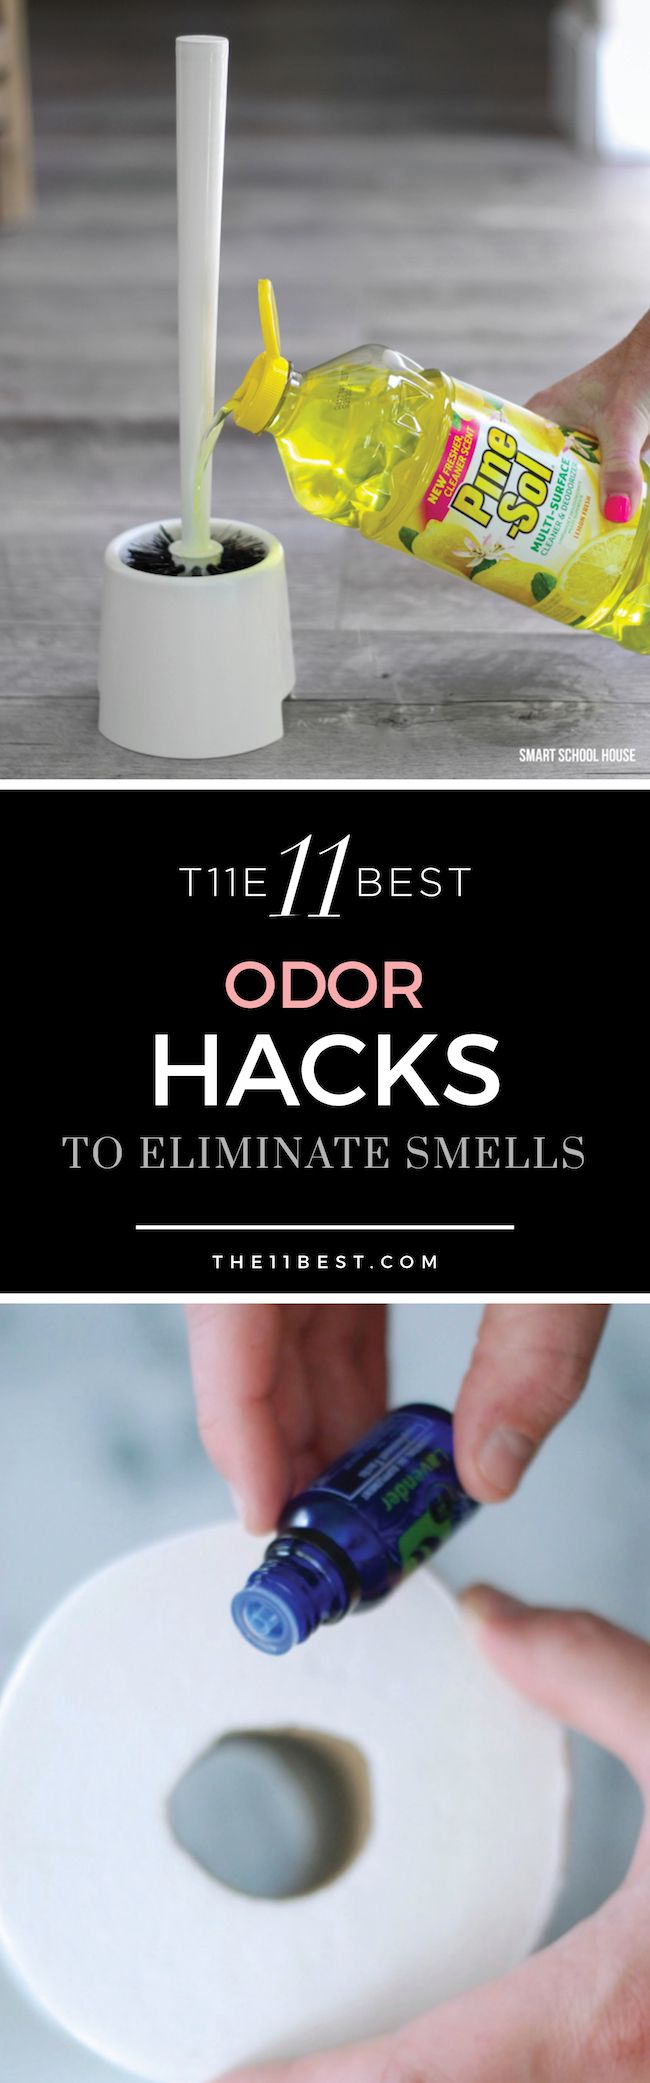 These 11 Best Hacks for Eliminating Odors will help you say goodbye to stink once and for all.